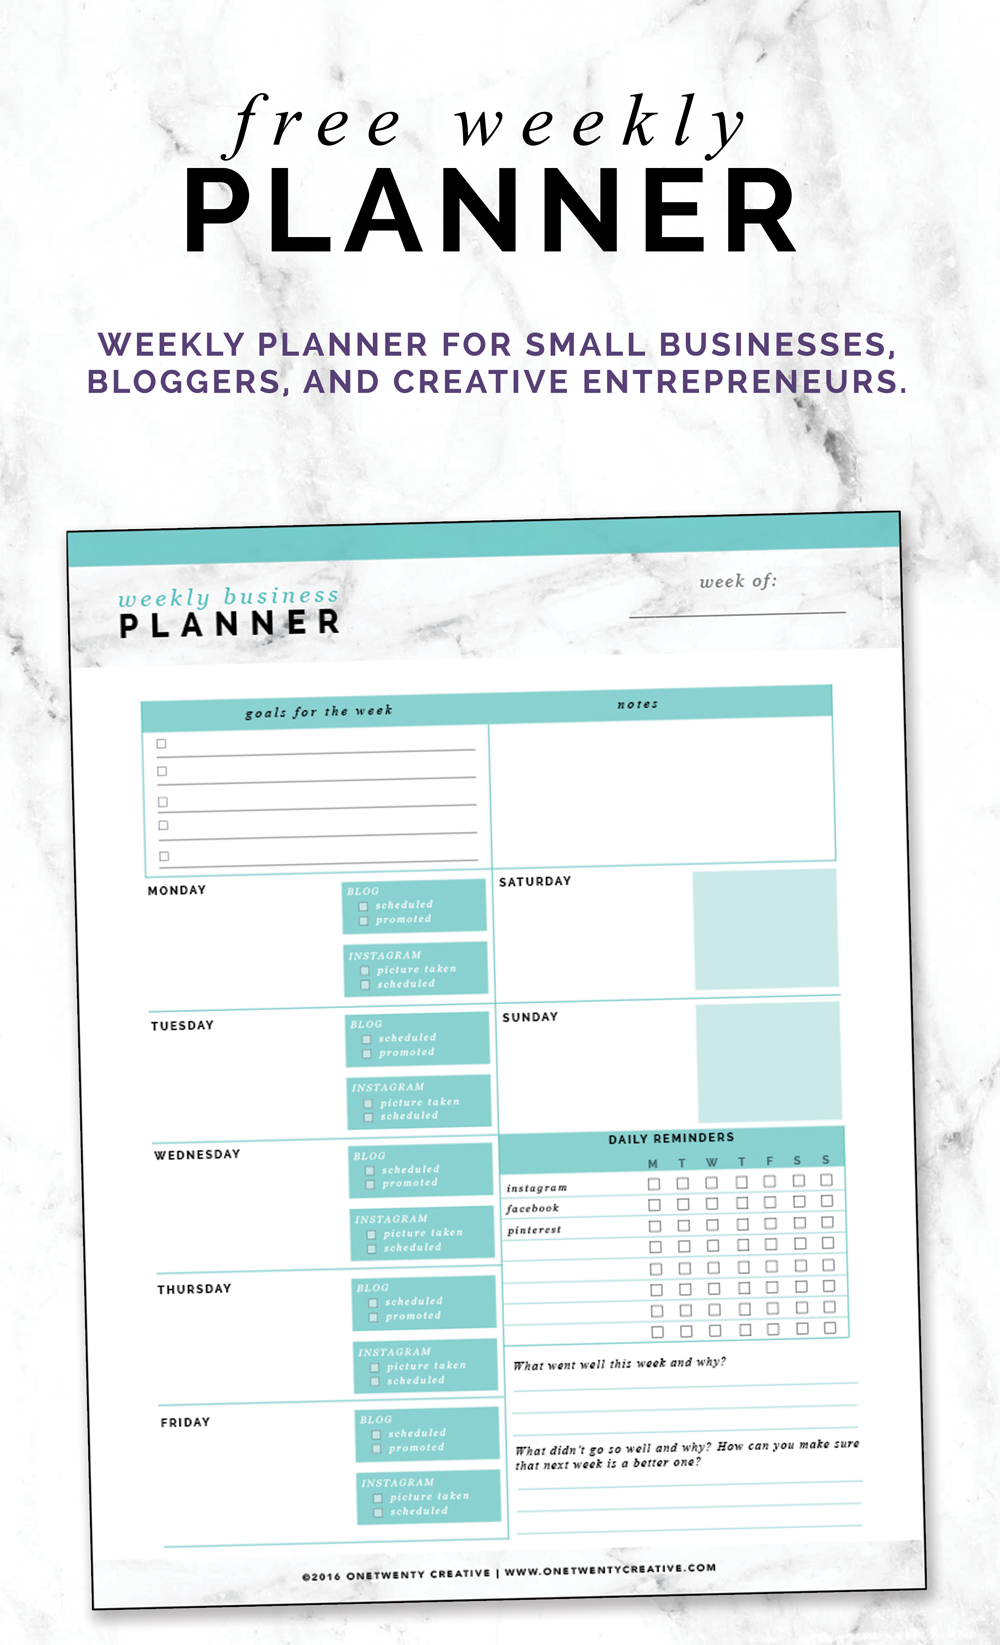 free weekly planner for small businesses bloggers and creative